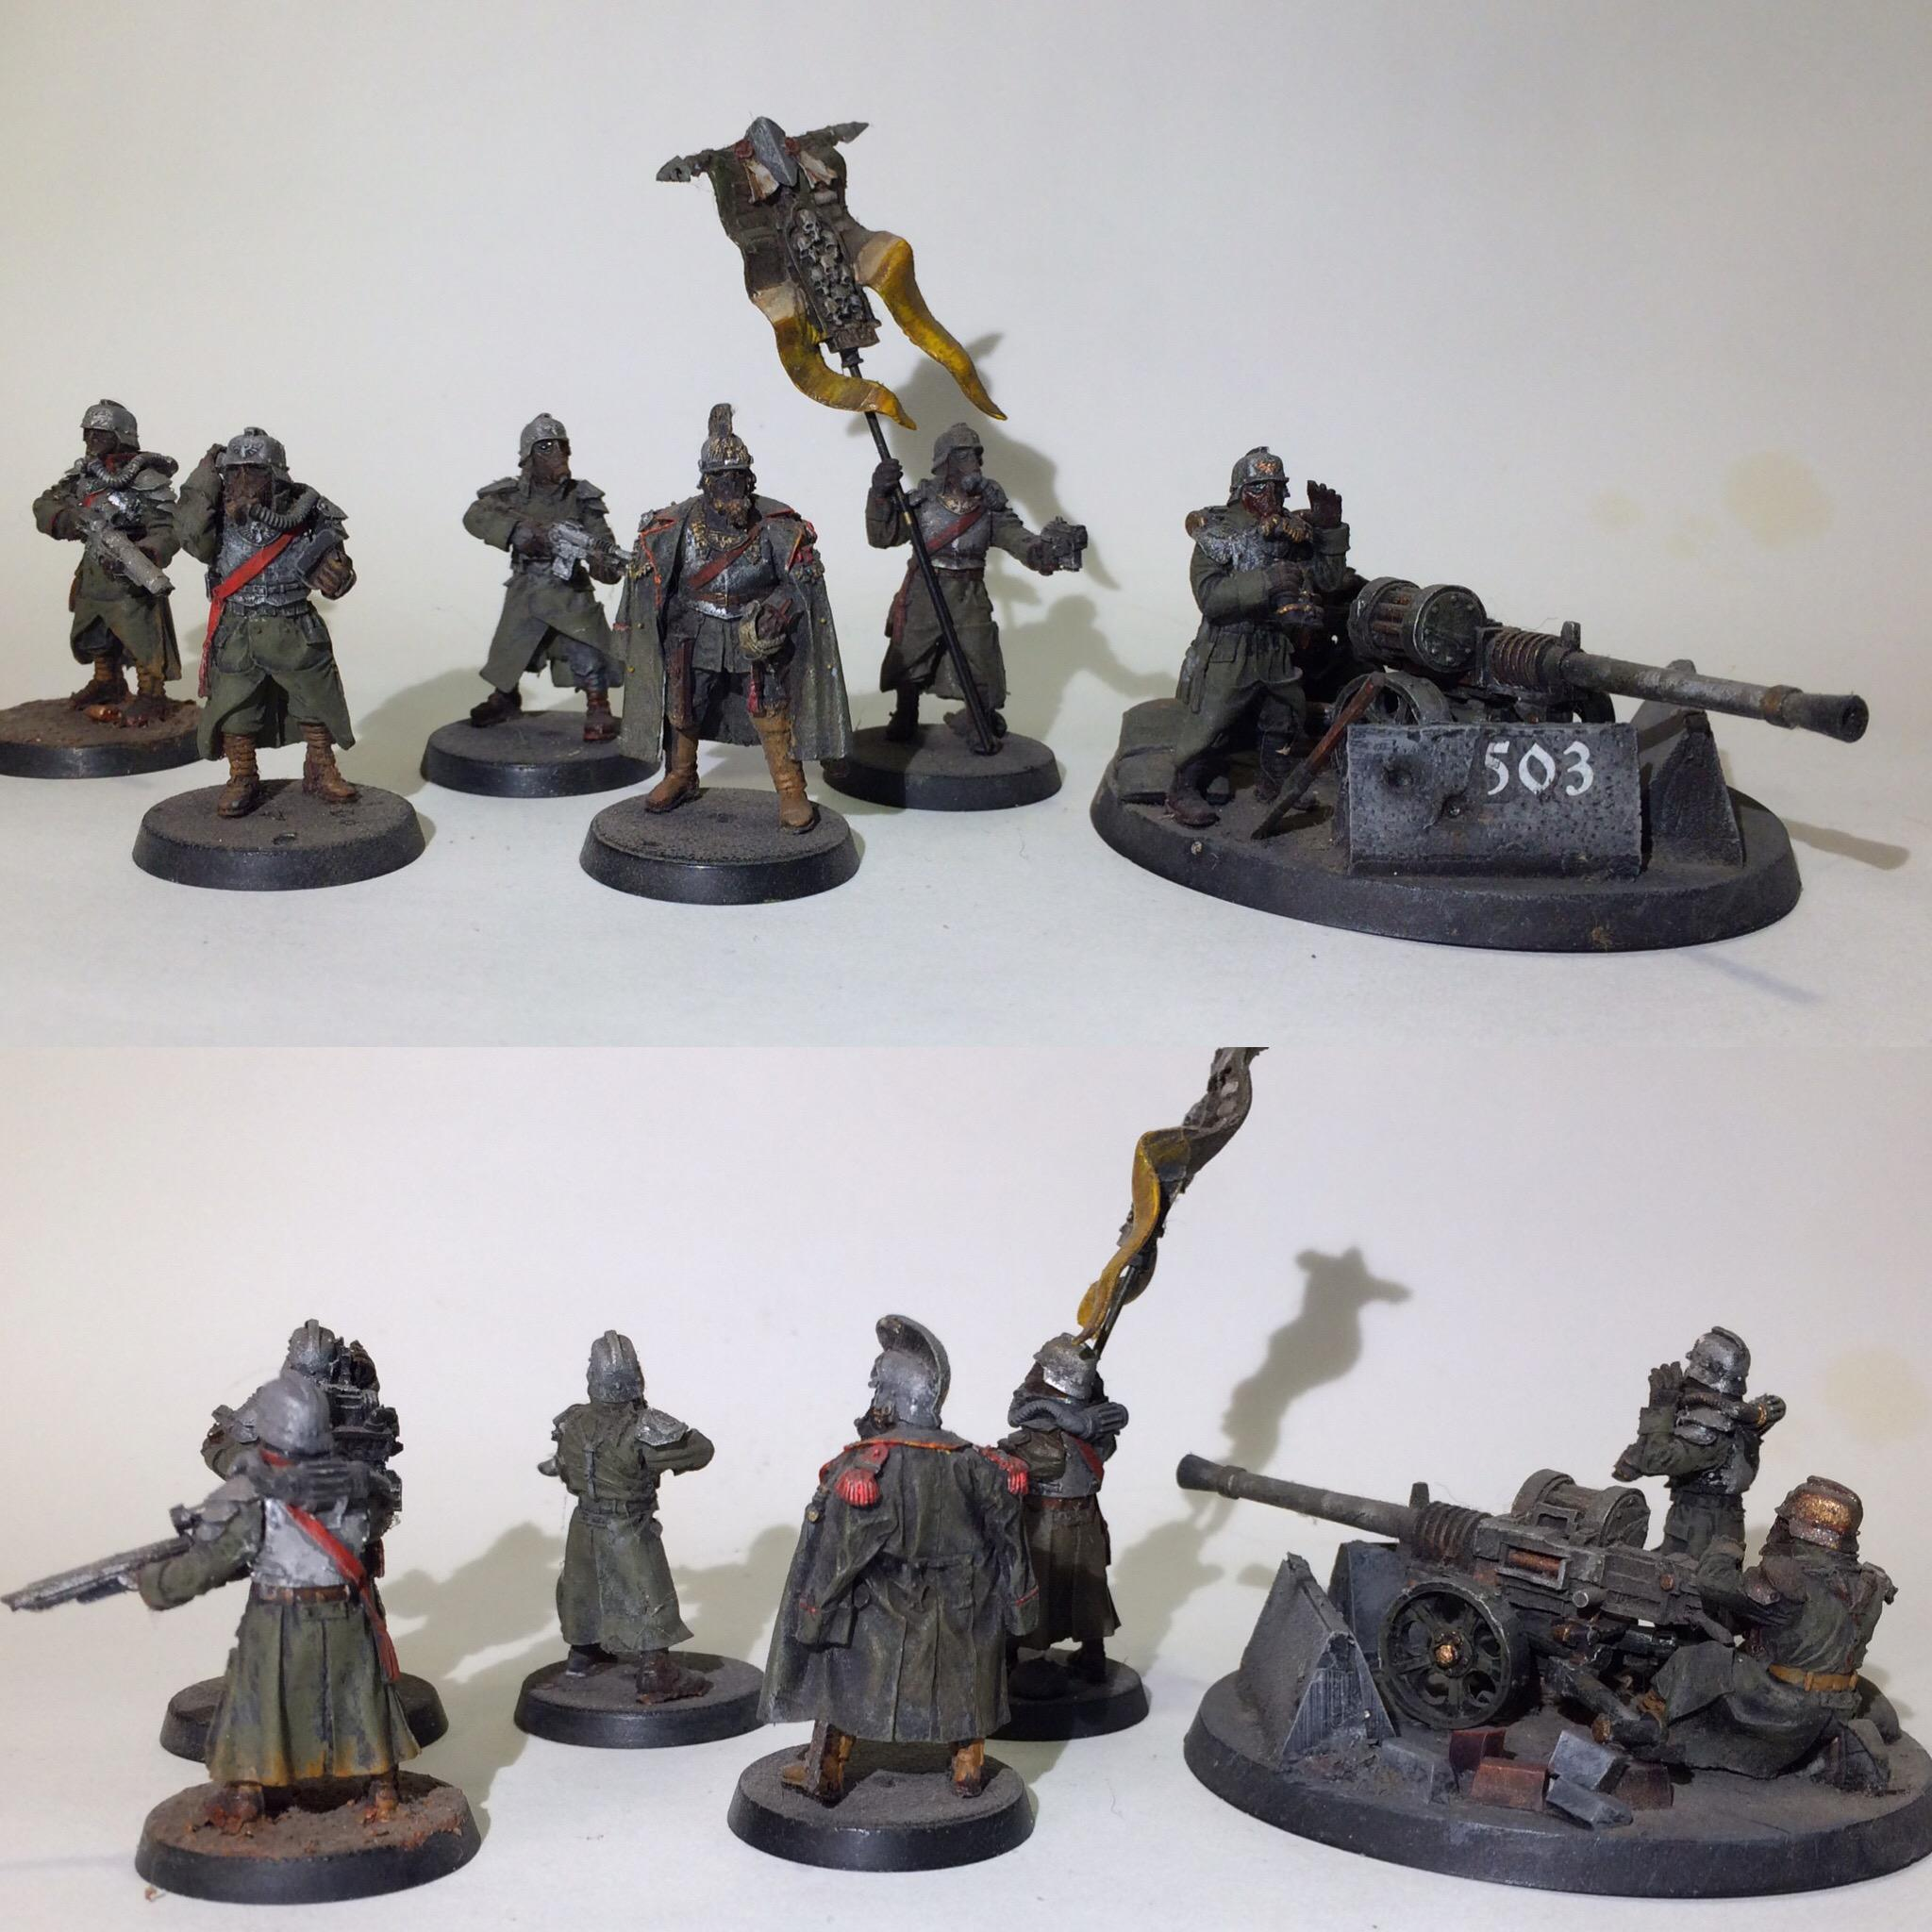 Airbrushed, Astra Militarum, Autocannon, Custom, Death Korps of Krieg, Flocked, Forge World, Heavy Weapons Team, Hq Command Squad, Infantry, Warhammer 40,000